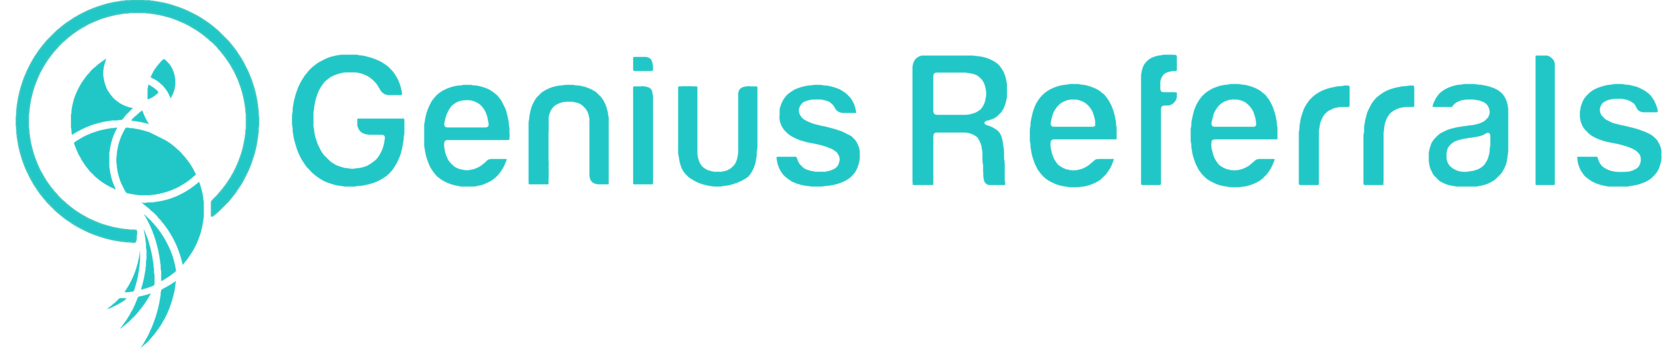 Genius Referrals Logo